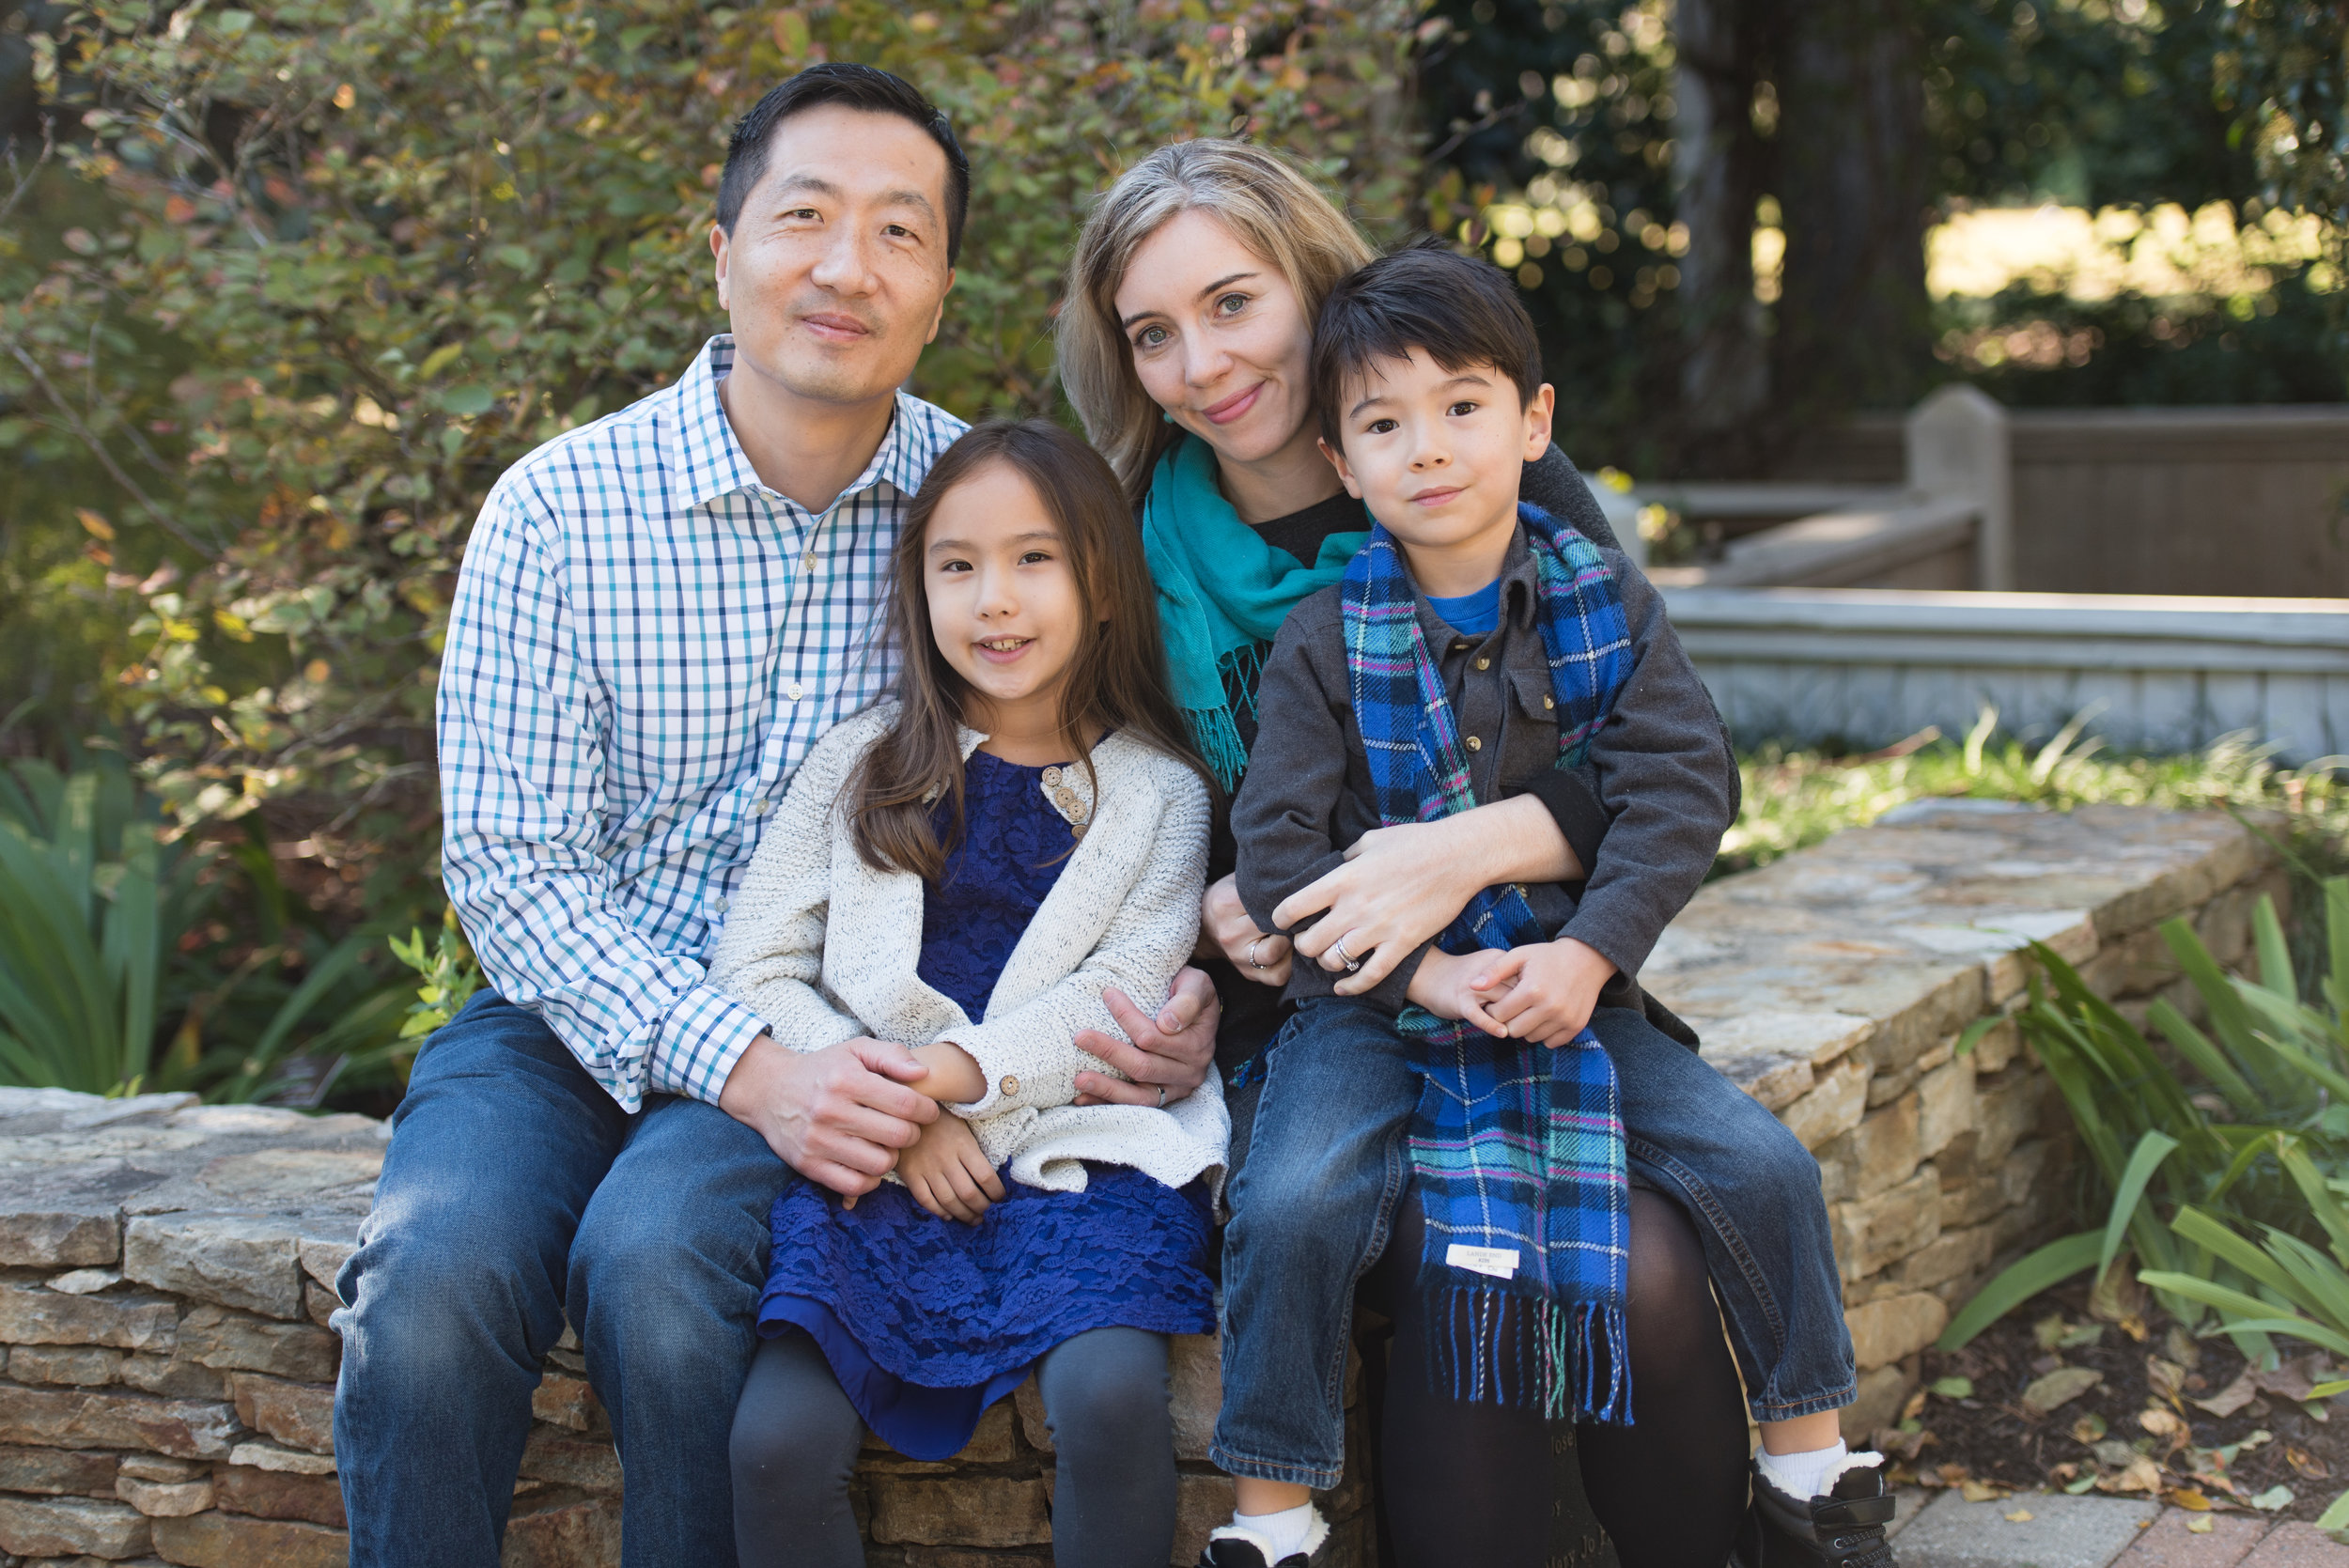 Many families choose me to photograph their families year after year.